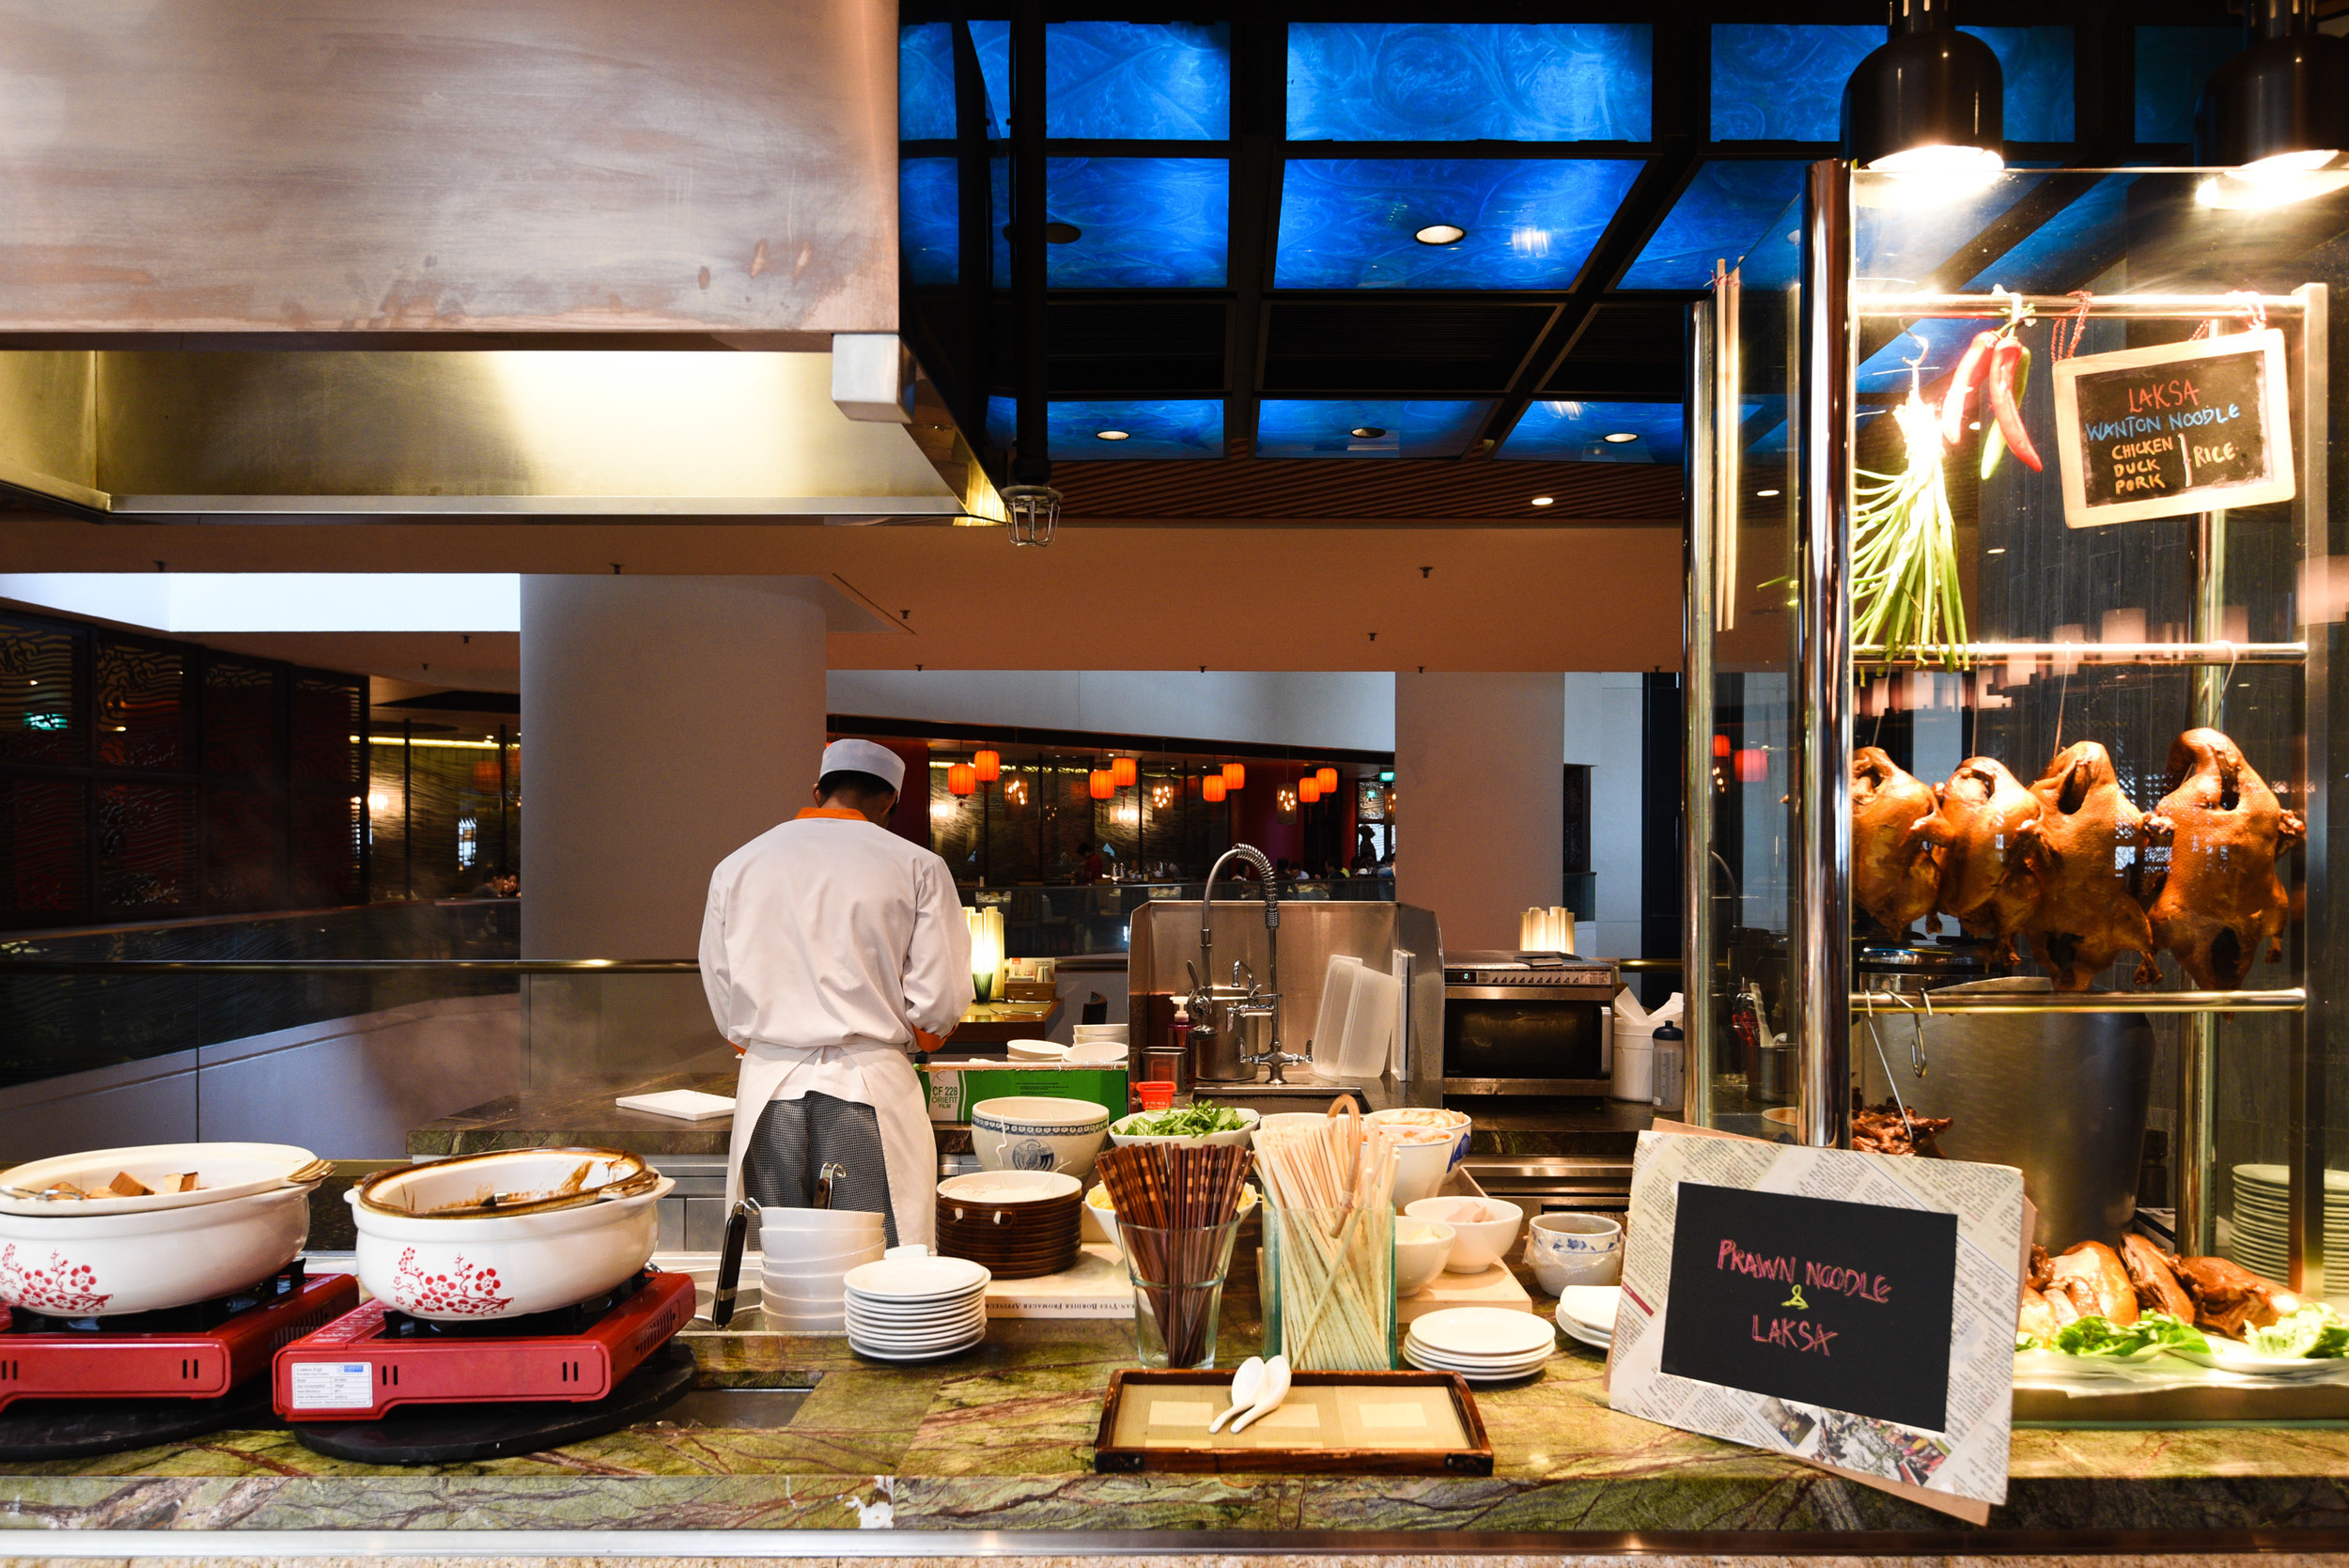 Live Food Kitchen at Edge - Pan Pacific Singapore